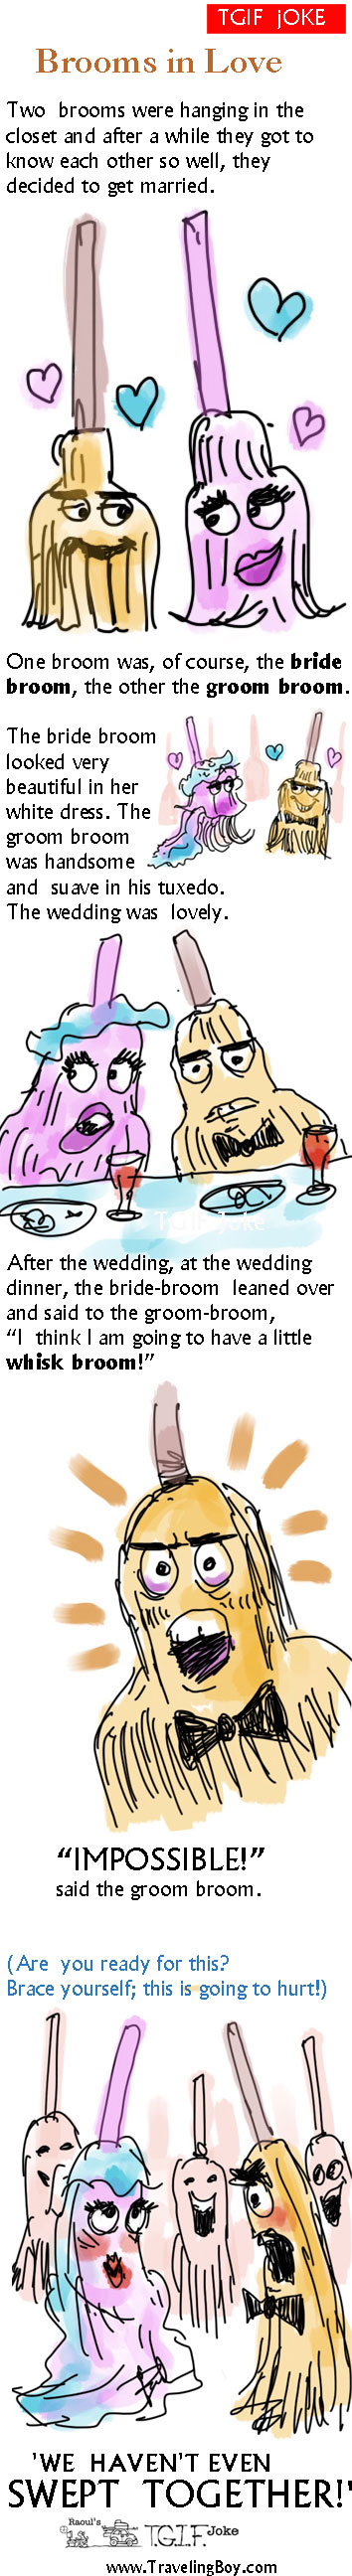 TGIF Joke of the Week: Brooms in Love